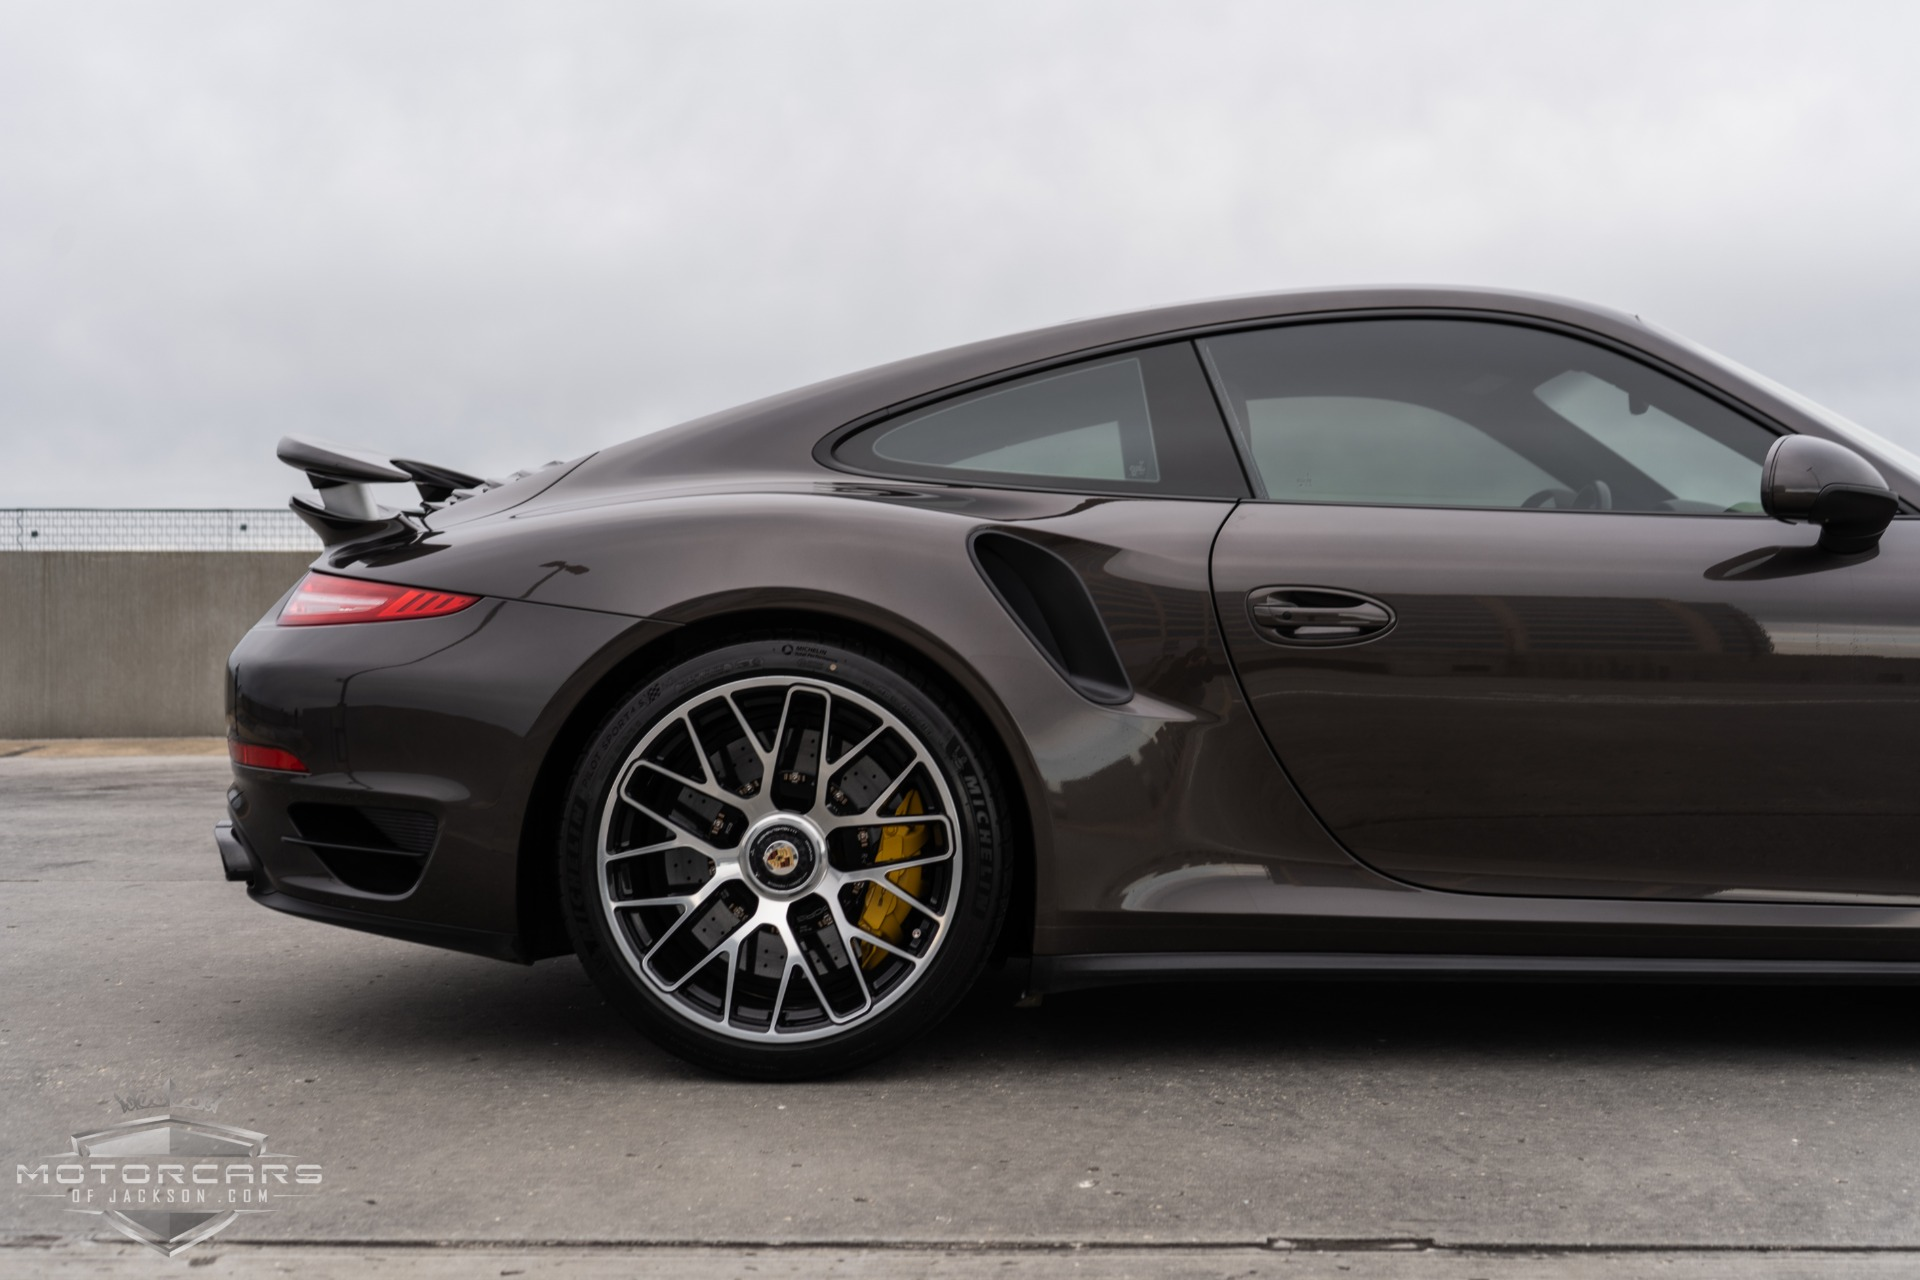 Used-2015-Porsche-911-Turbo-S-Jackson-MS